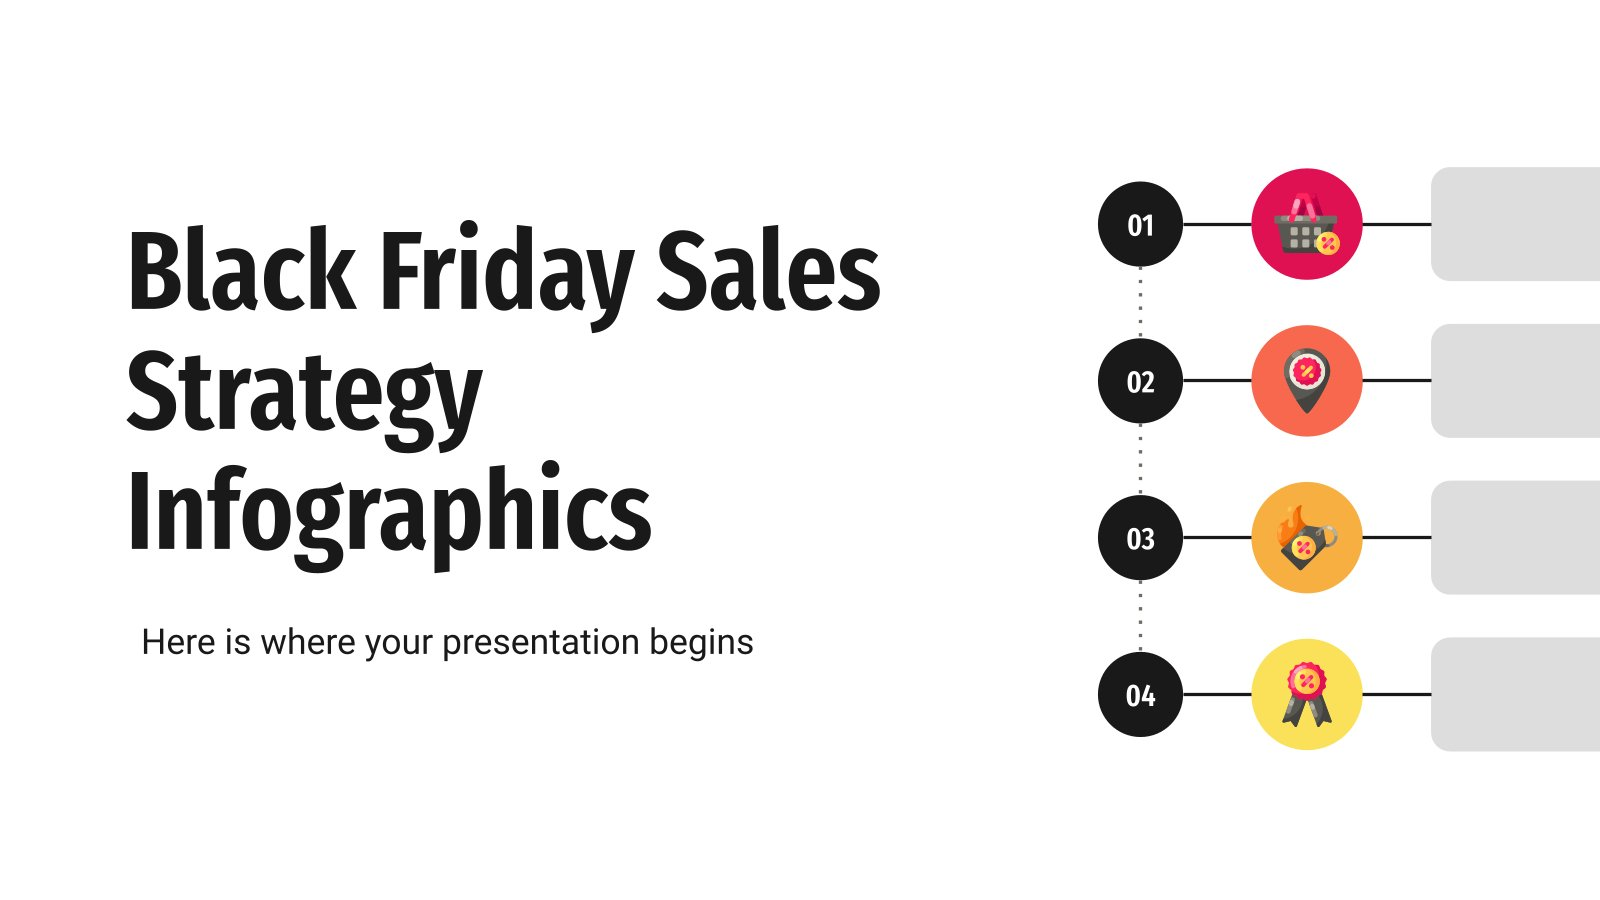 Black Friday Sales Strategy Infographics presentation template